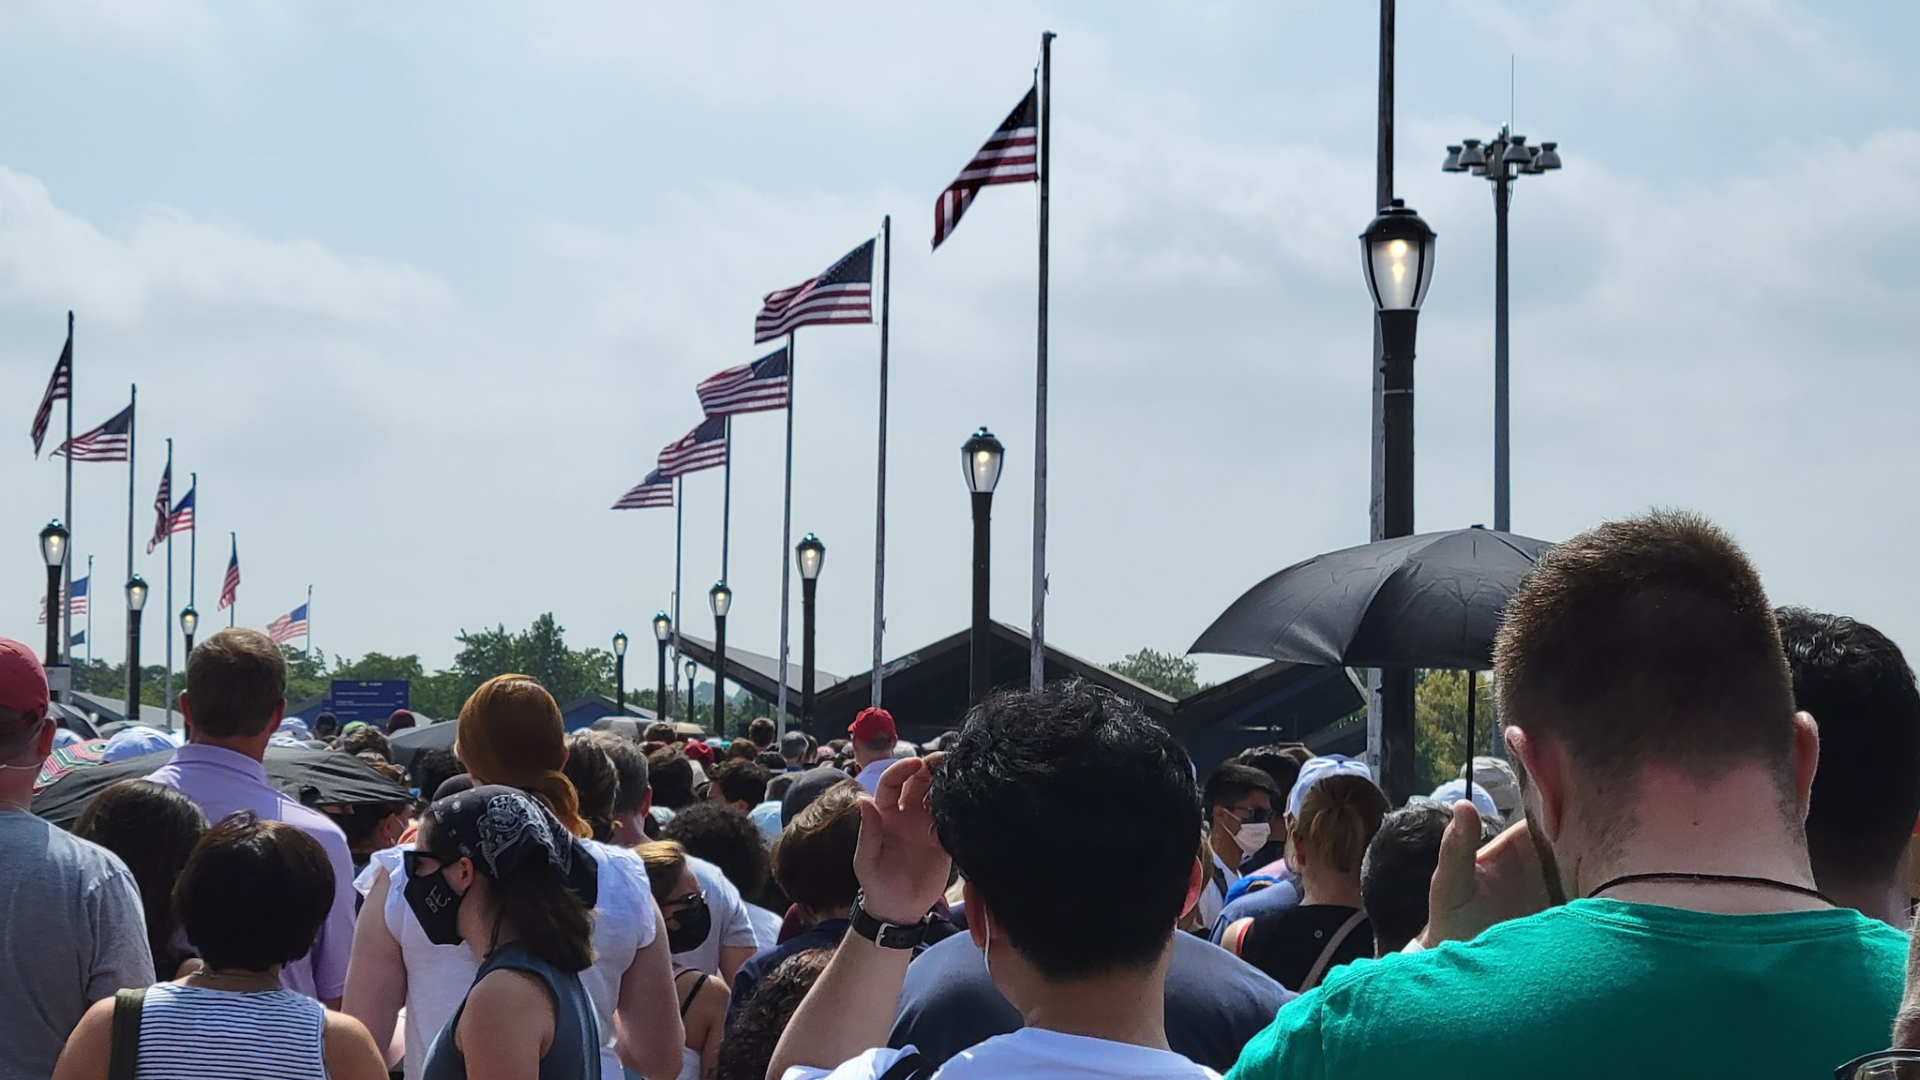 Long lines at the US Open